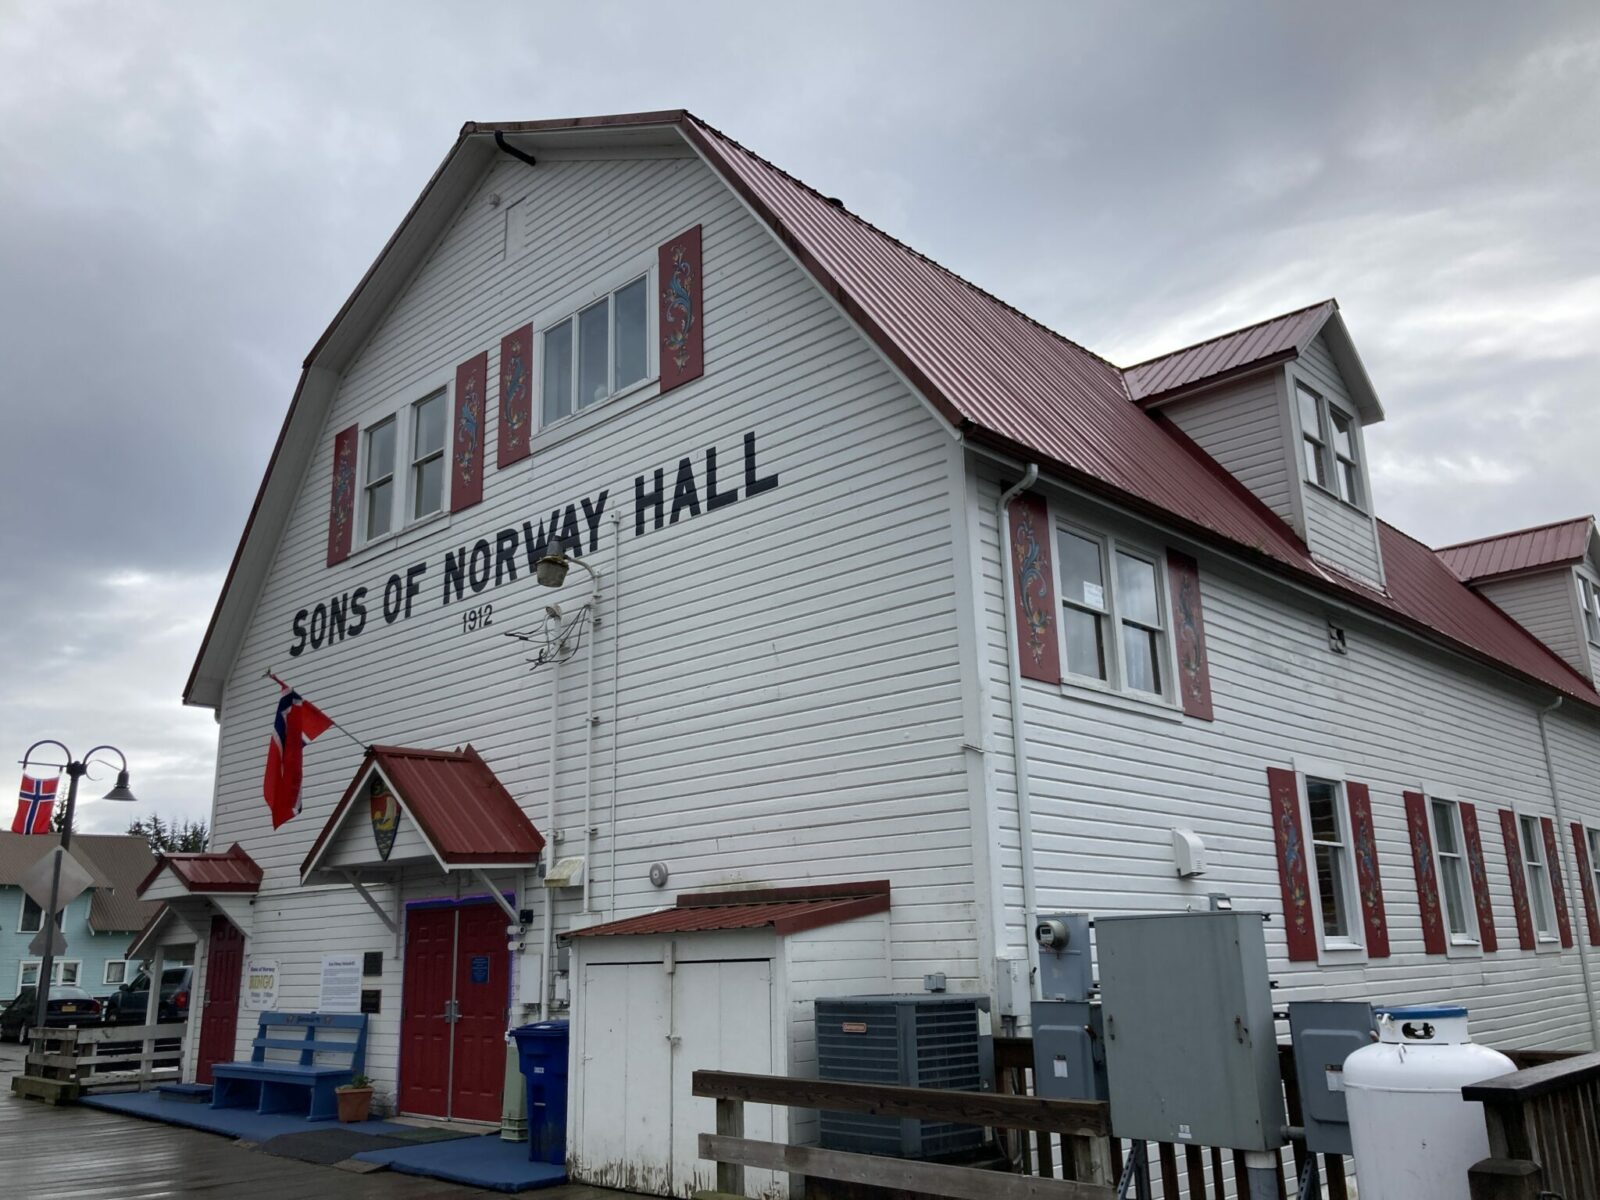 A large barn shaped white wooden building with a red roof. The building says Sons of Norway Hall and has two Norwegian flags